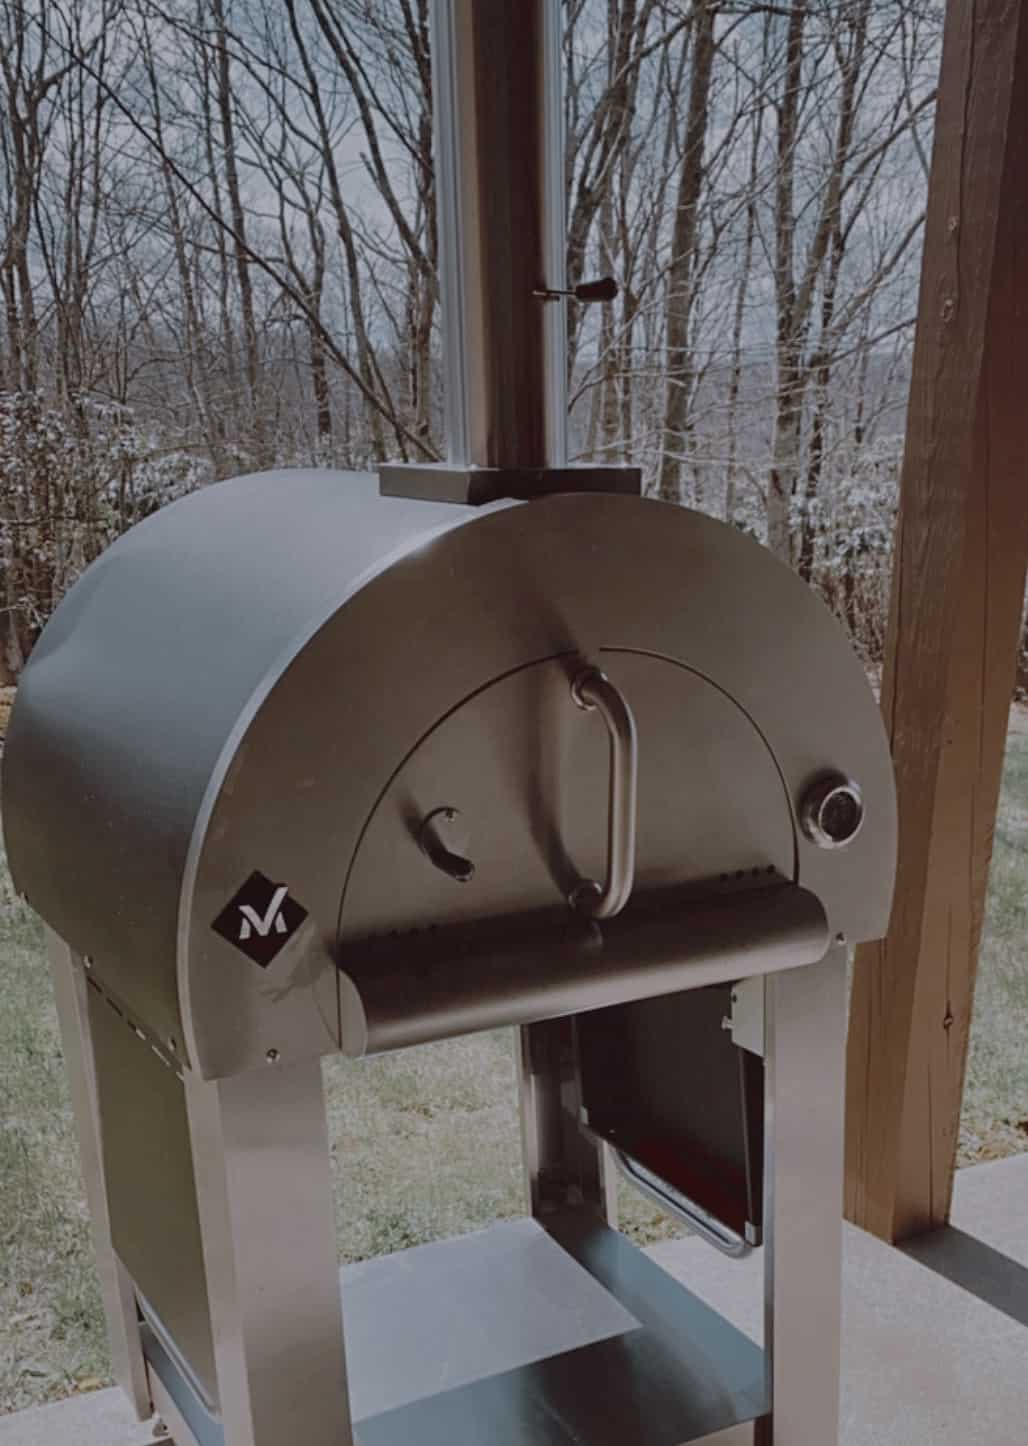 an outside pizza oven